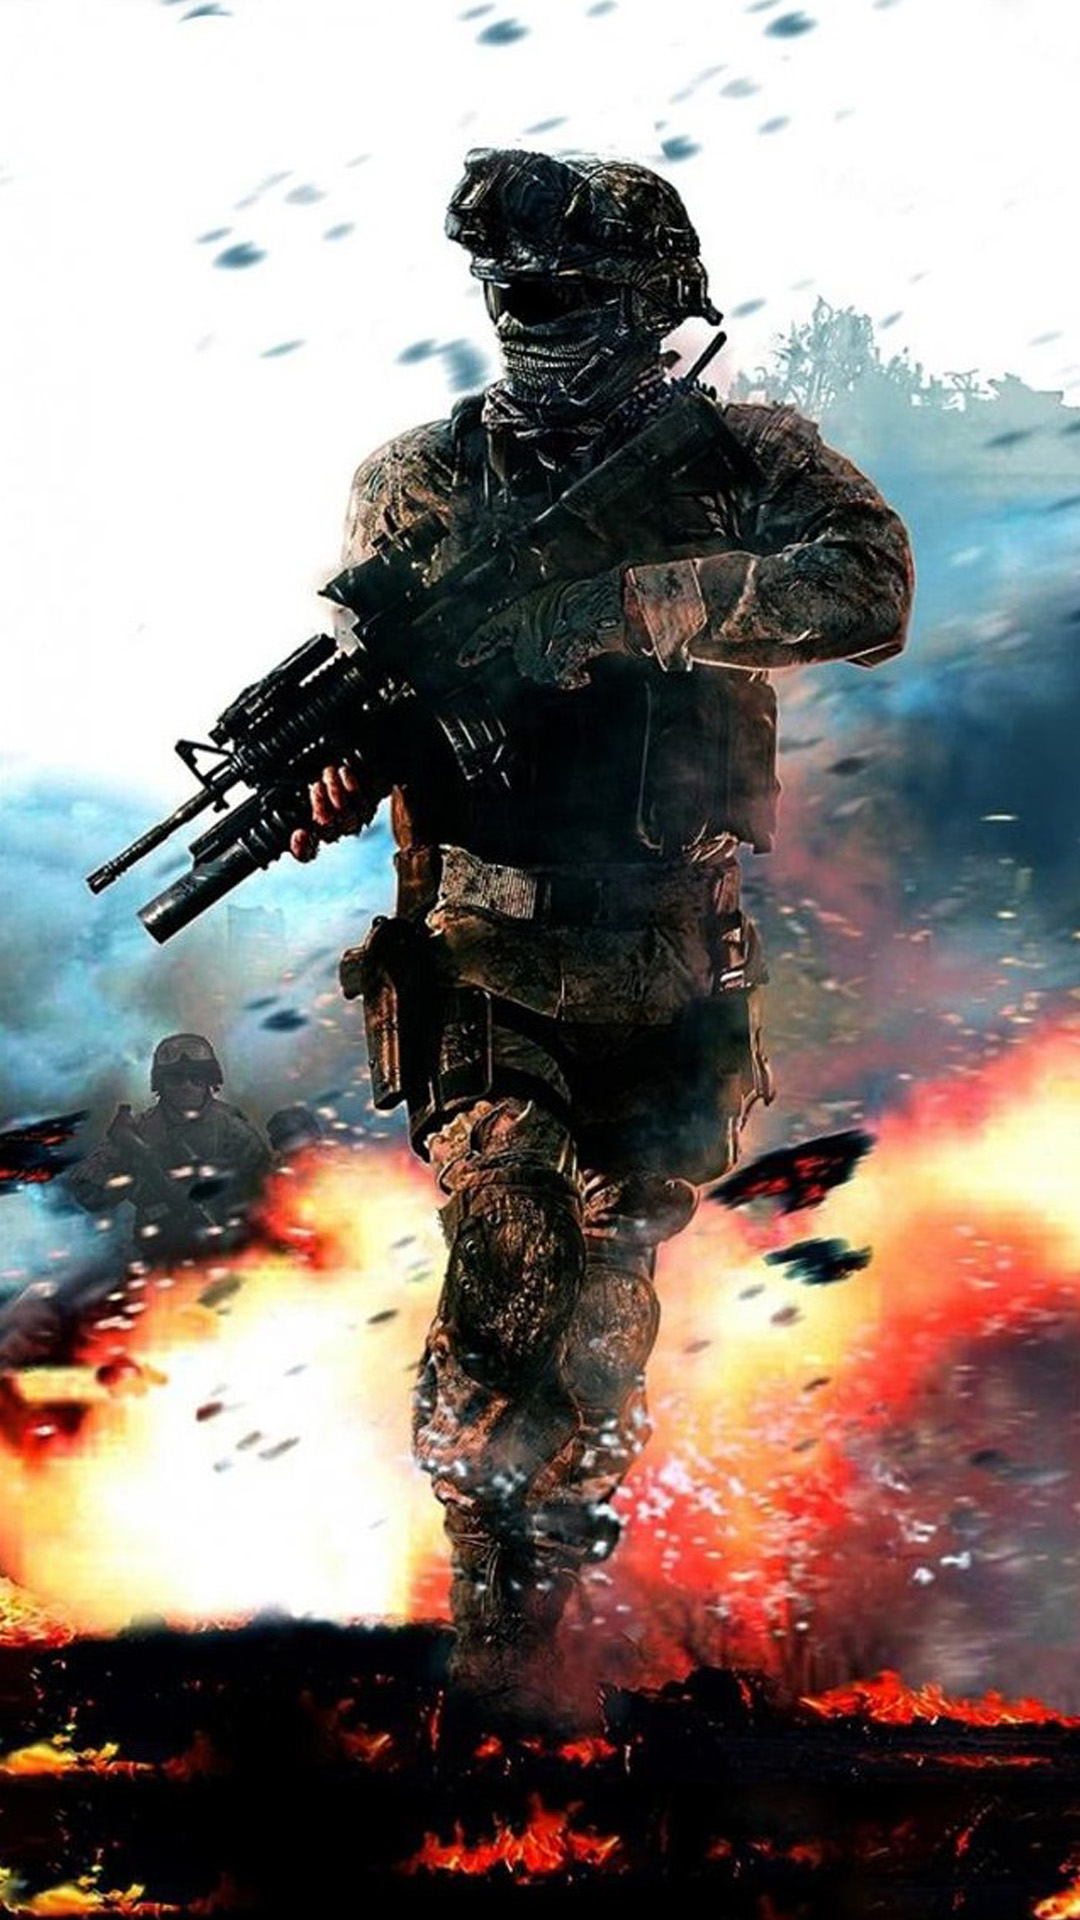 Call Of Duty Fire Blur Android Wallpaper Android Hd Wallpapers